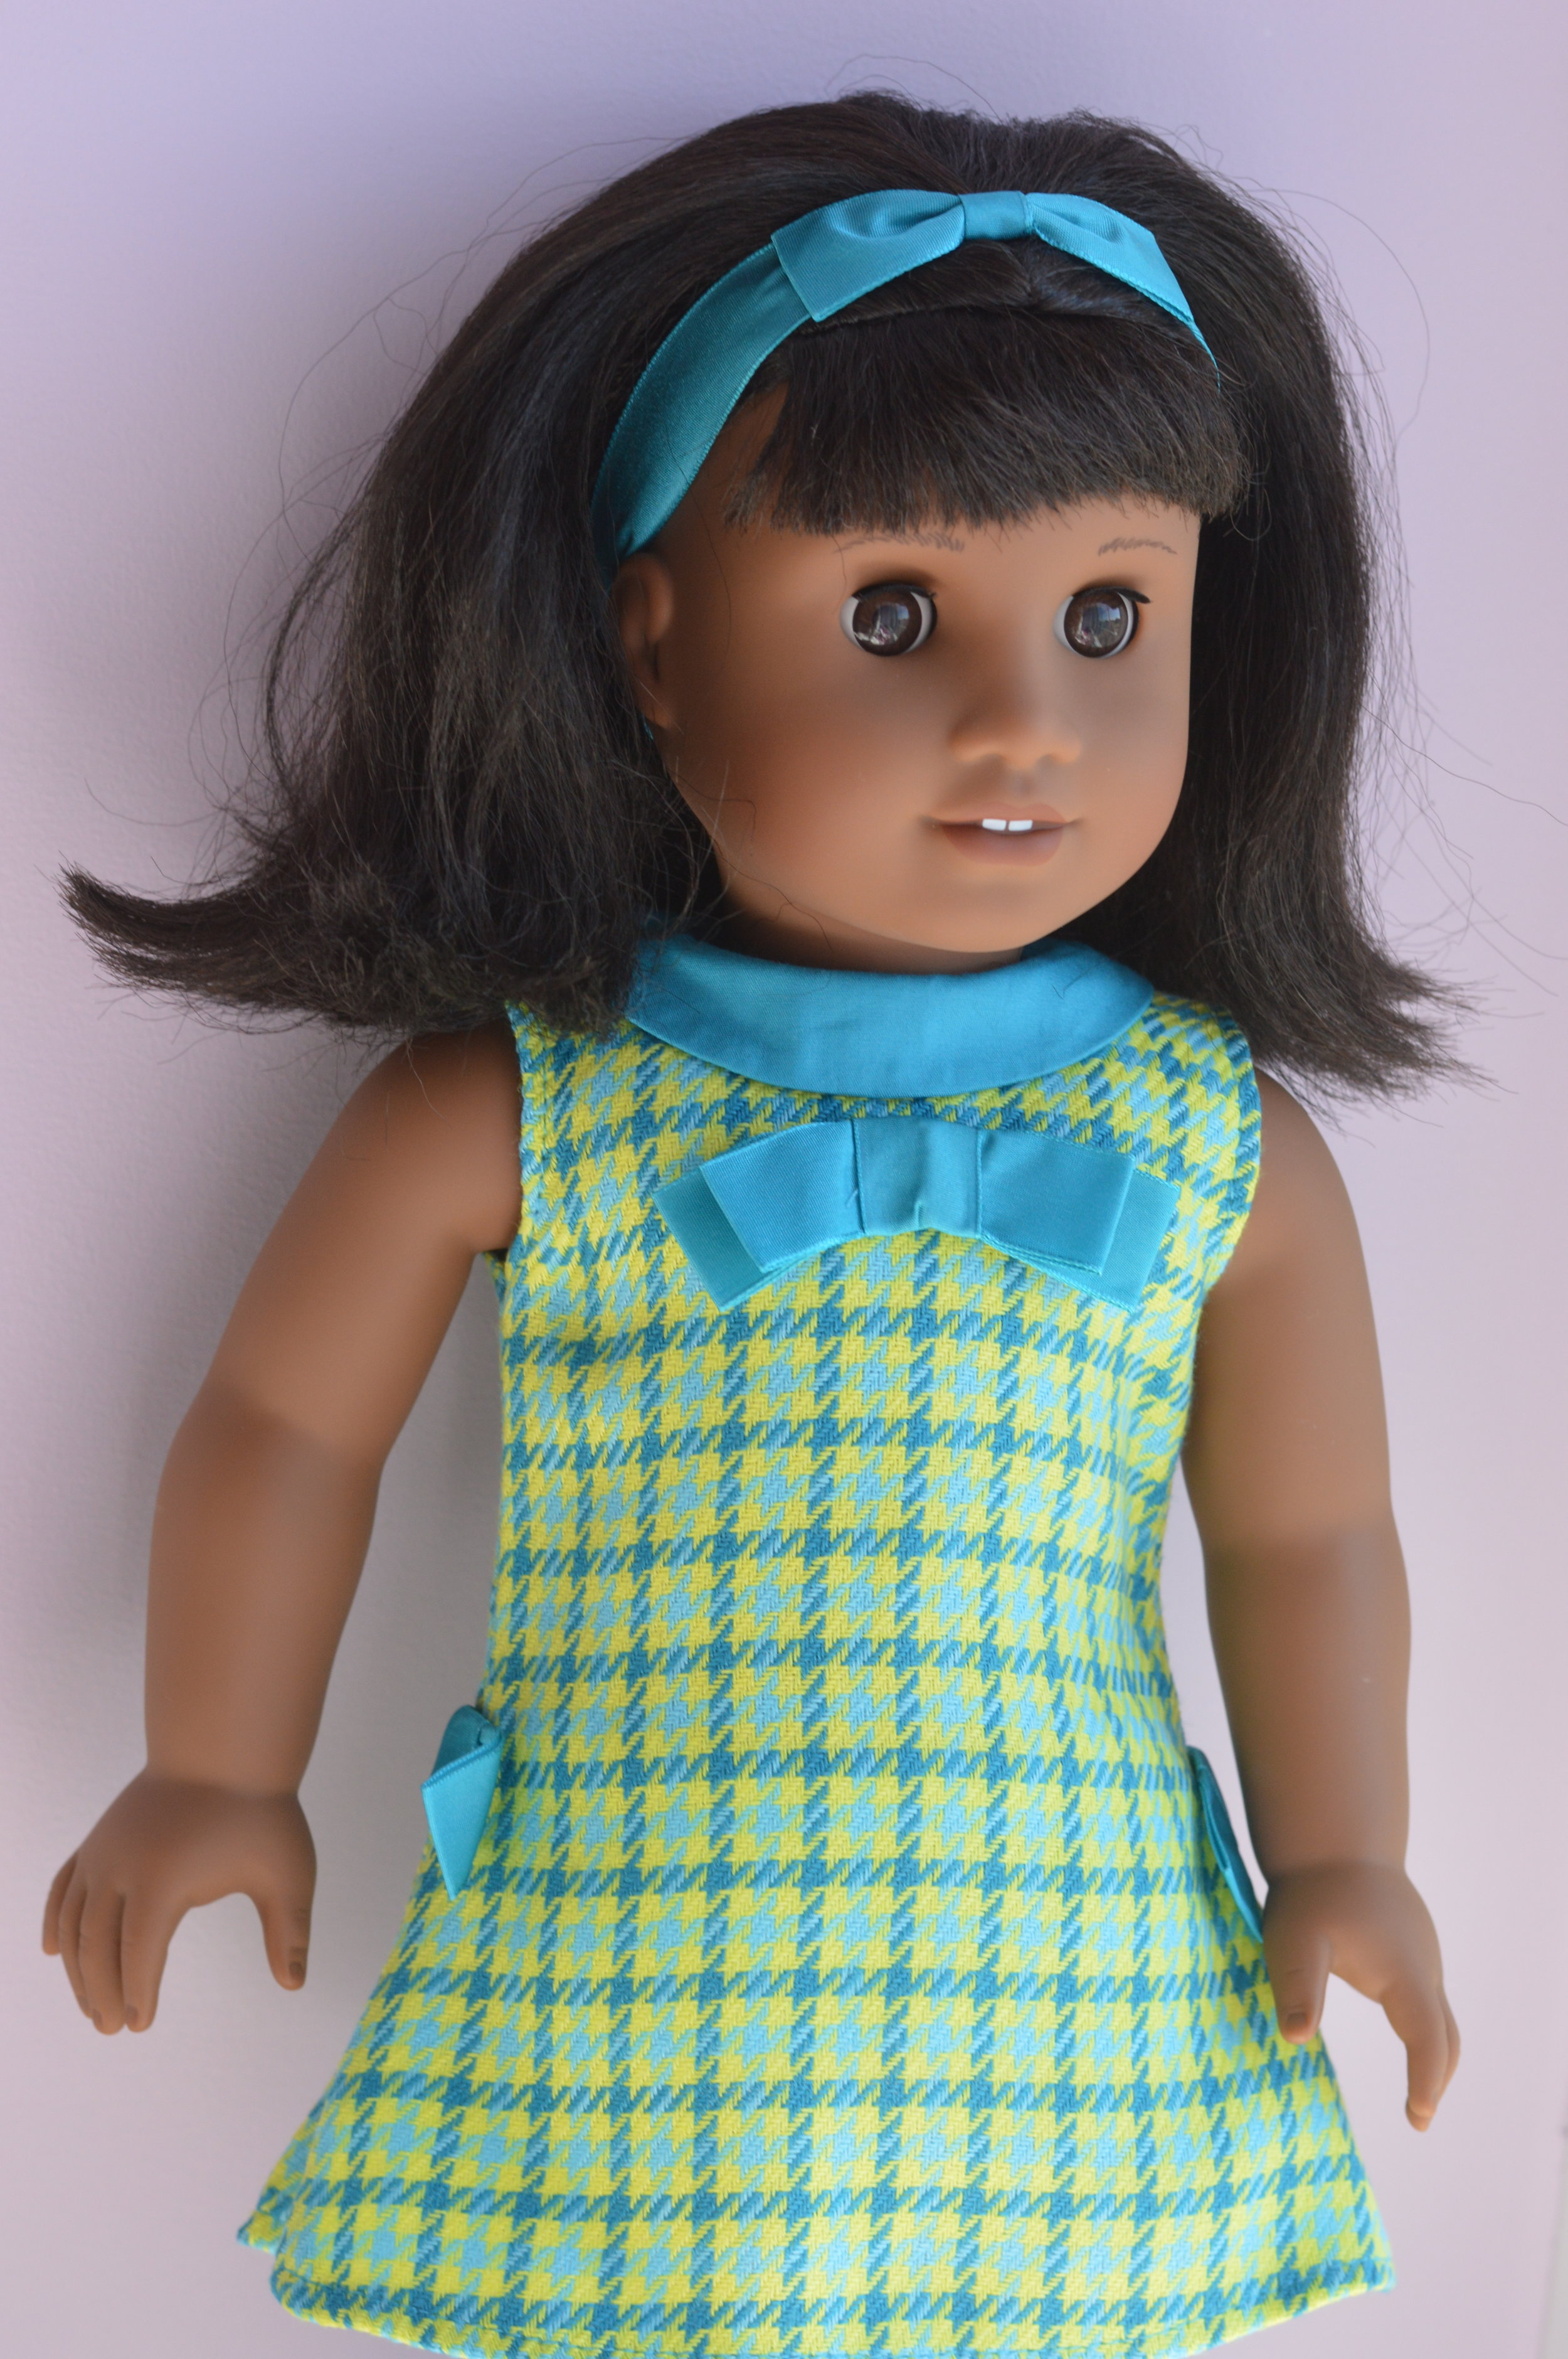 Melody from American Girl